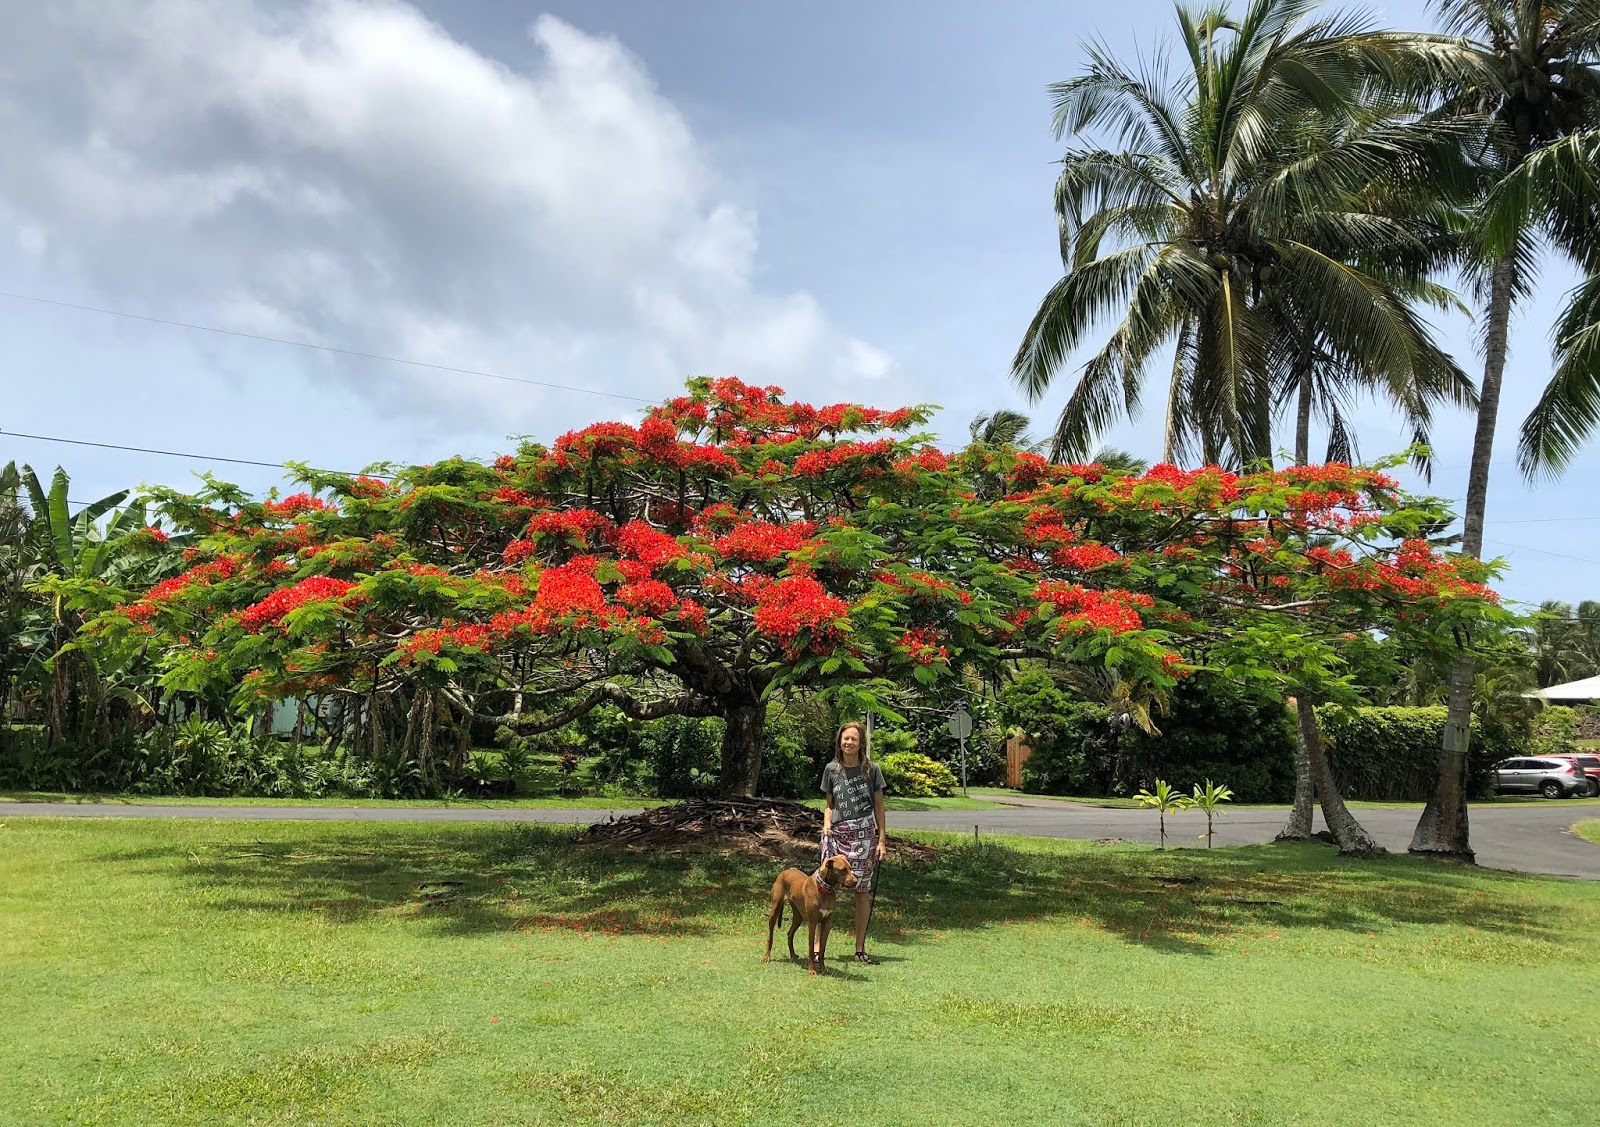 A tropical life june 2018 the most beautiful tree in kapoho izmirmasajfo